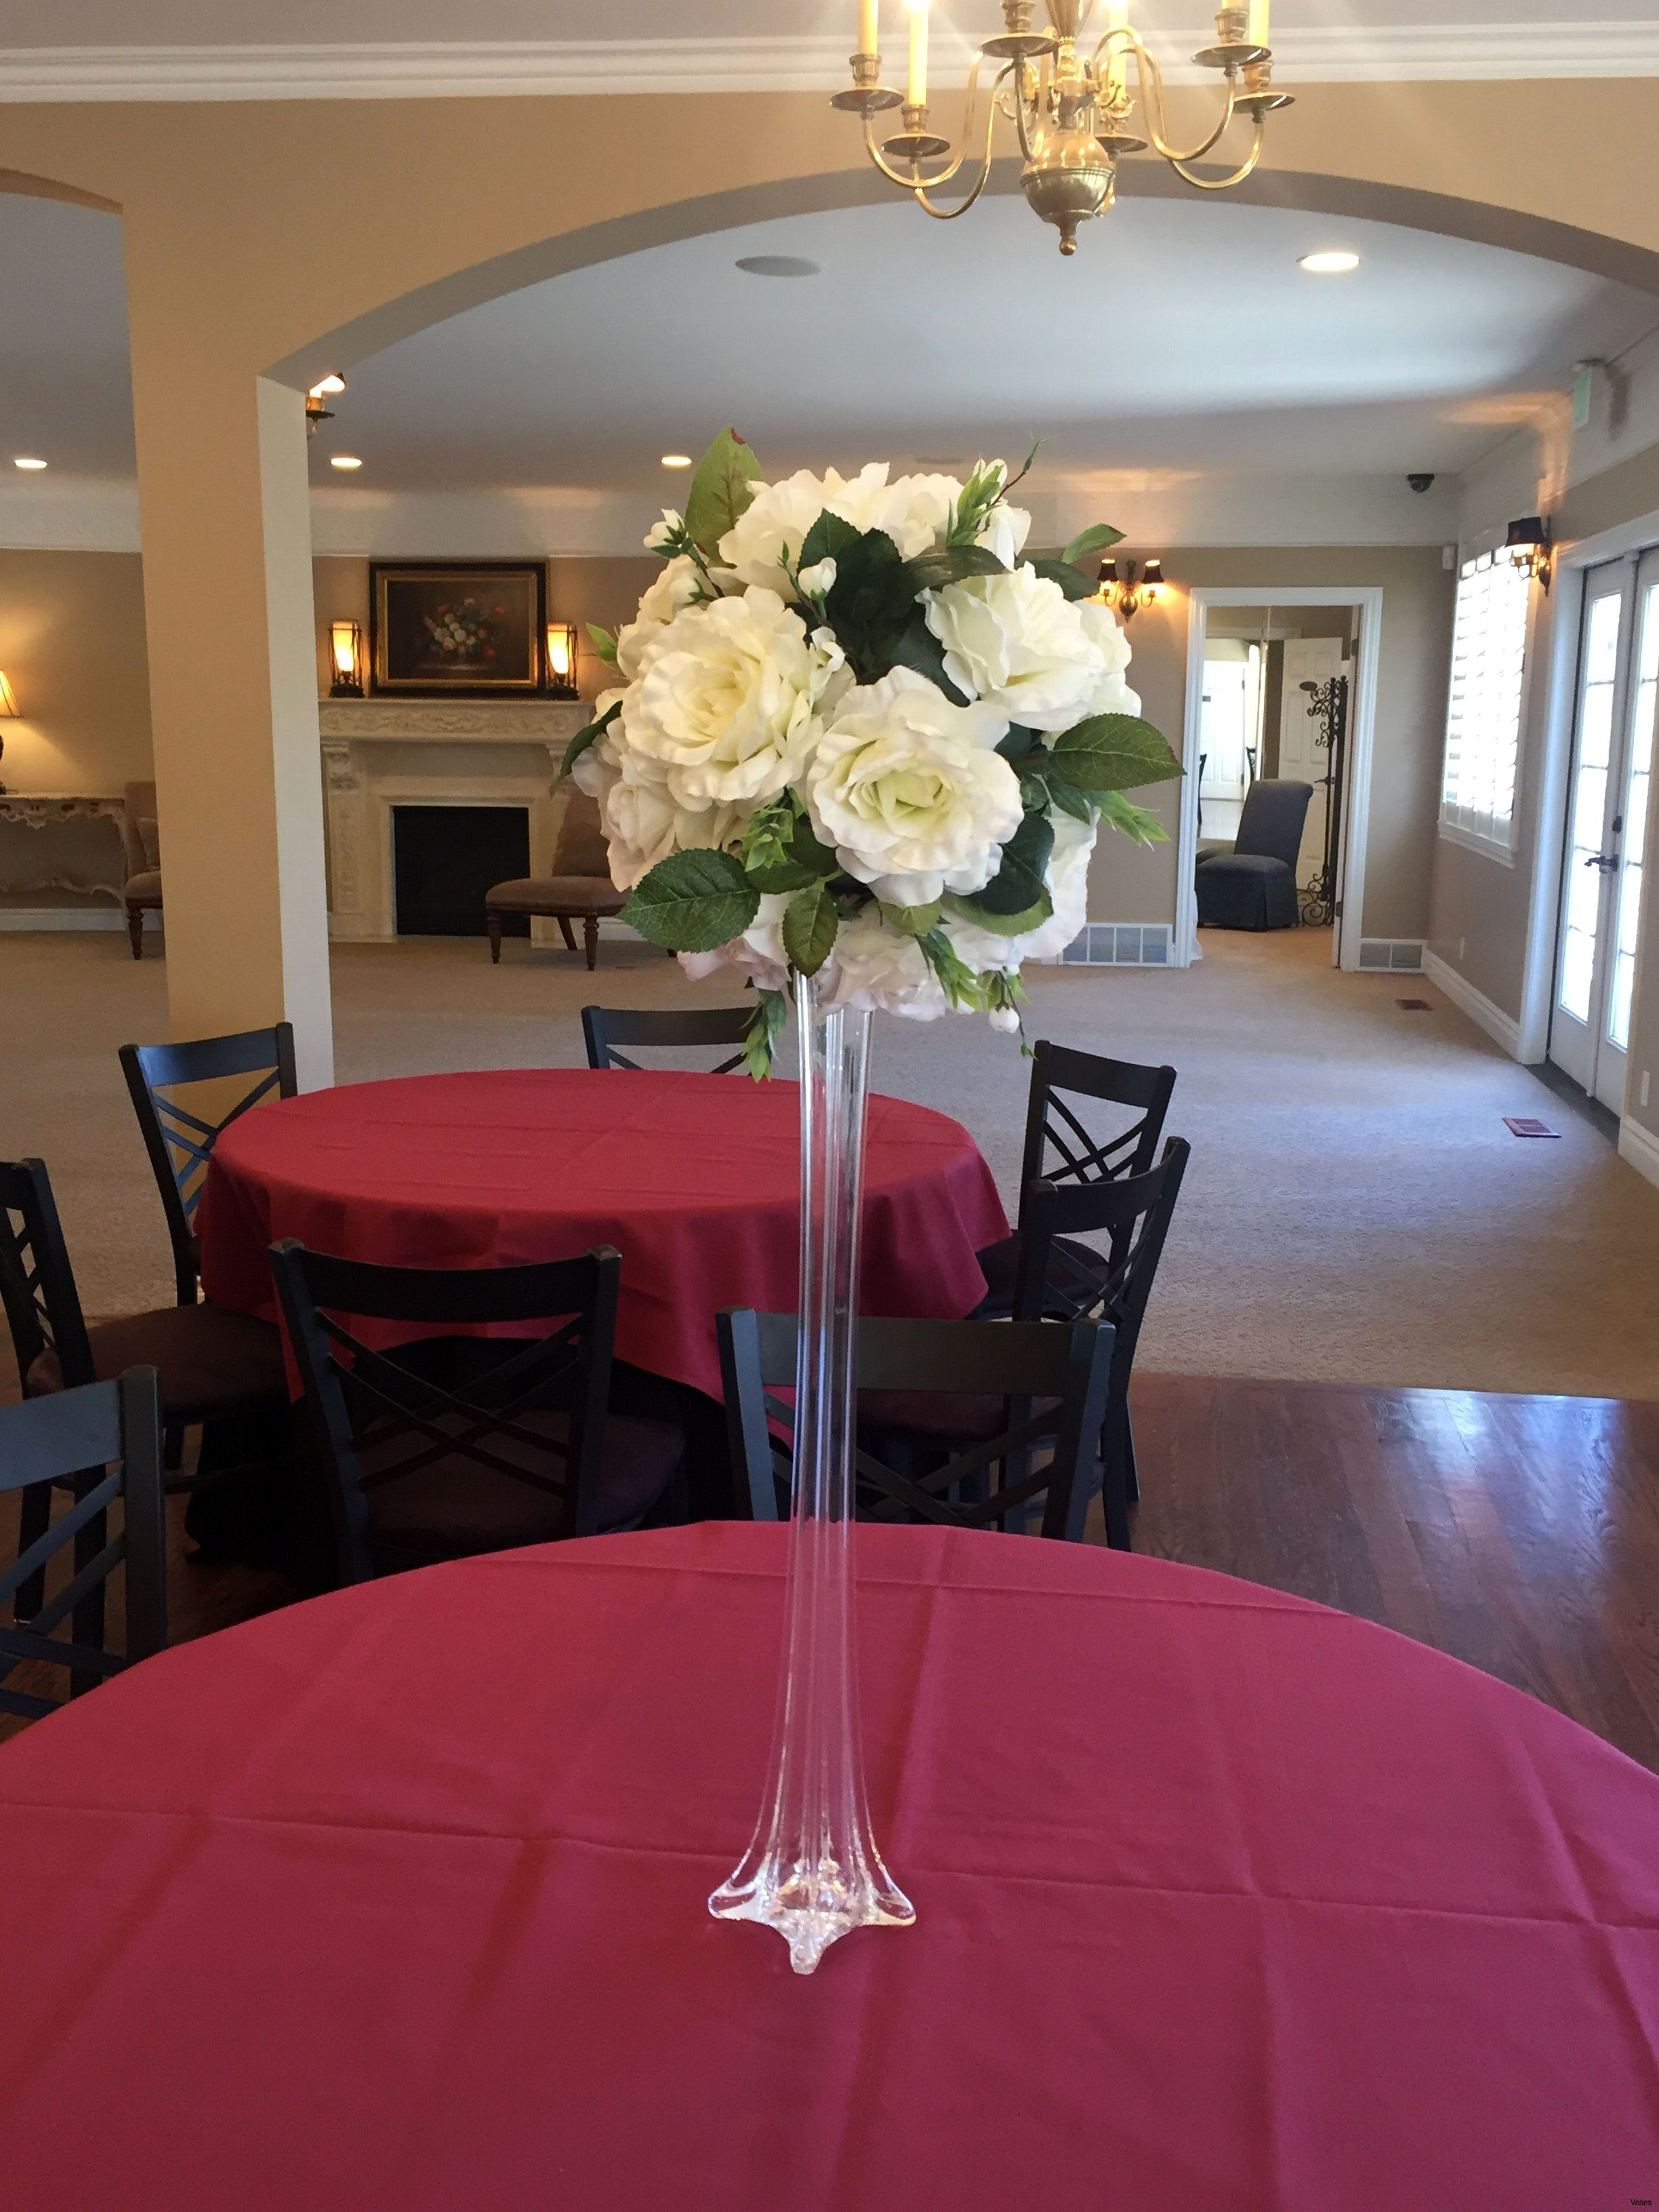 32 inch eiffel tower vases of 24 tall vases for sale the weekly world for lovely wedding decoration rental wedding decoration rental awesome eiffel tower vases centerpieces vtw01 24 inch clear whiteh whitei 0d